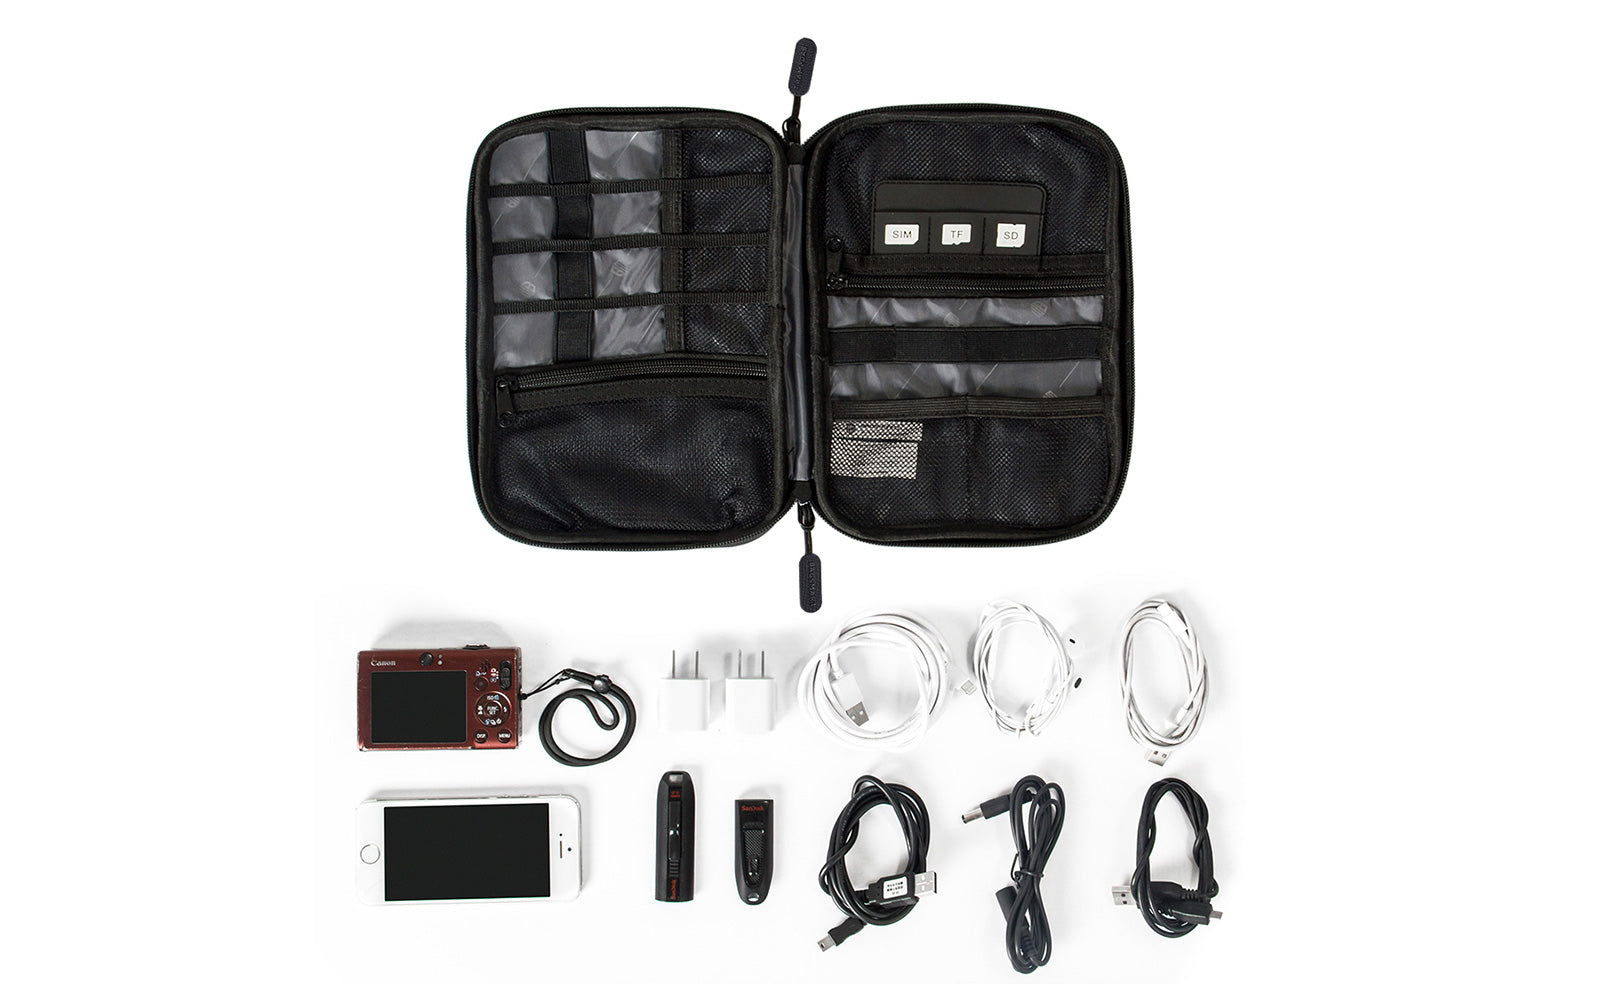 Travel Universal Cable Organizer Electronics Accessories Cases For Phone, Charger and Cable